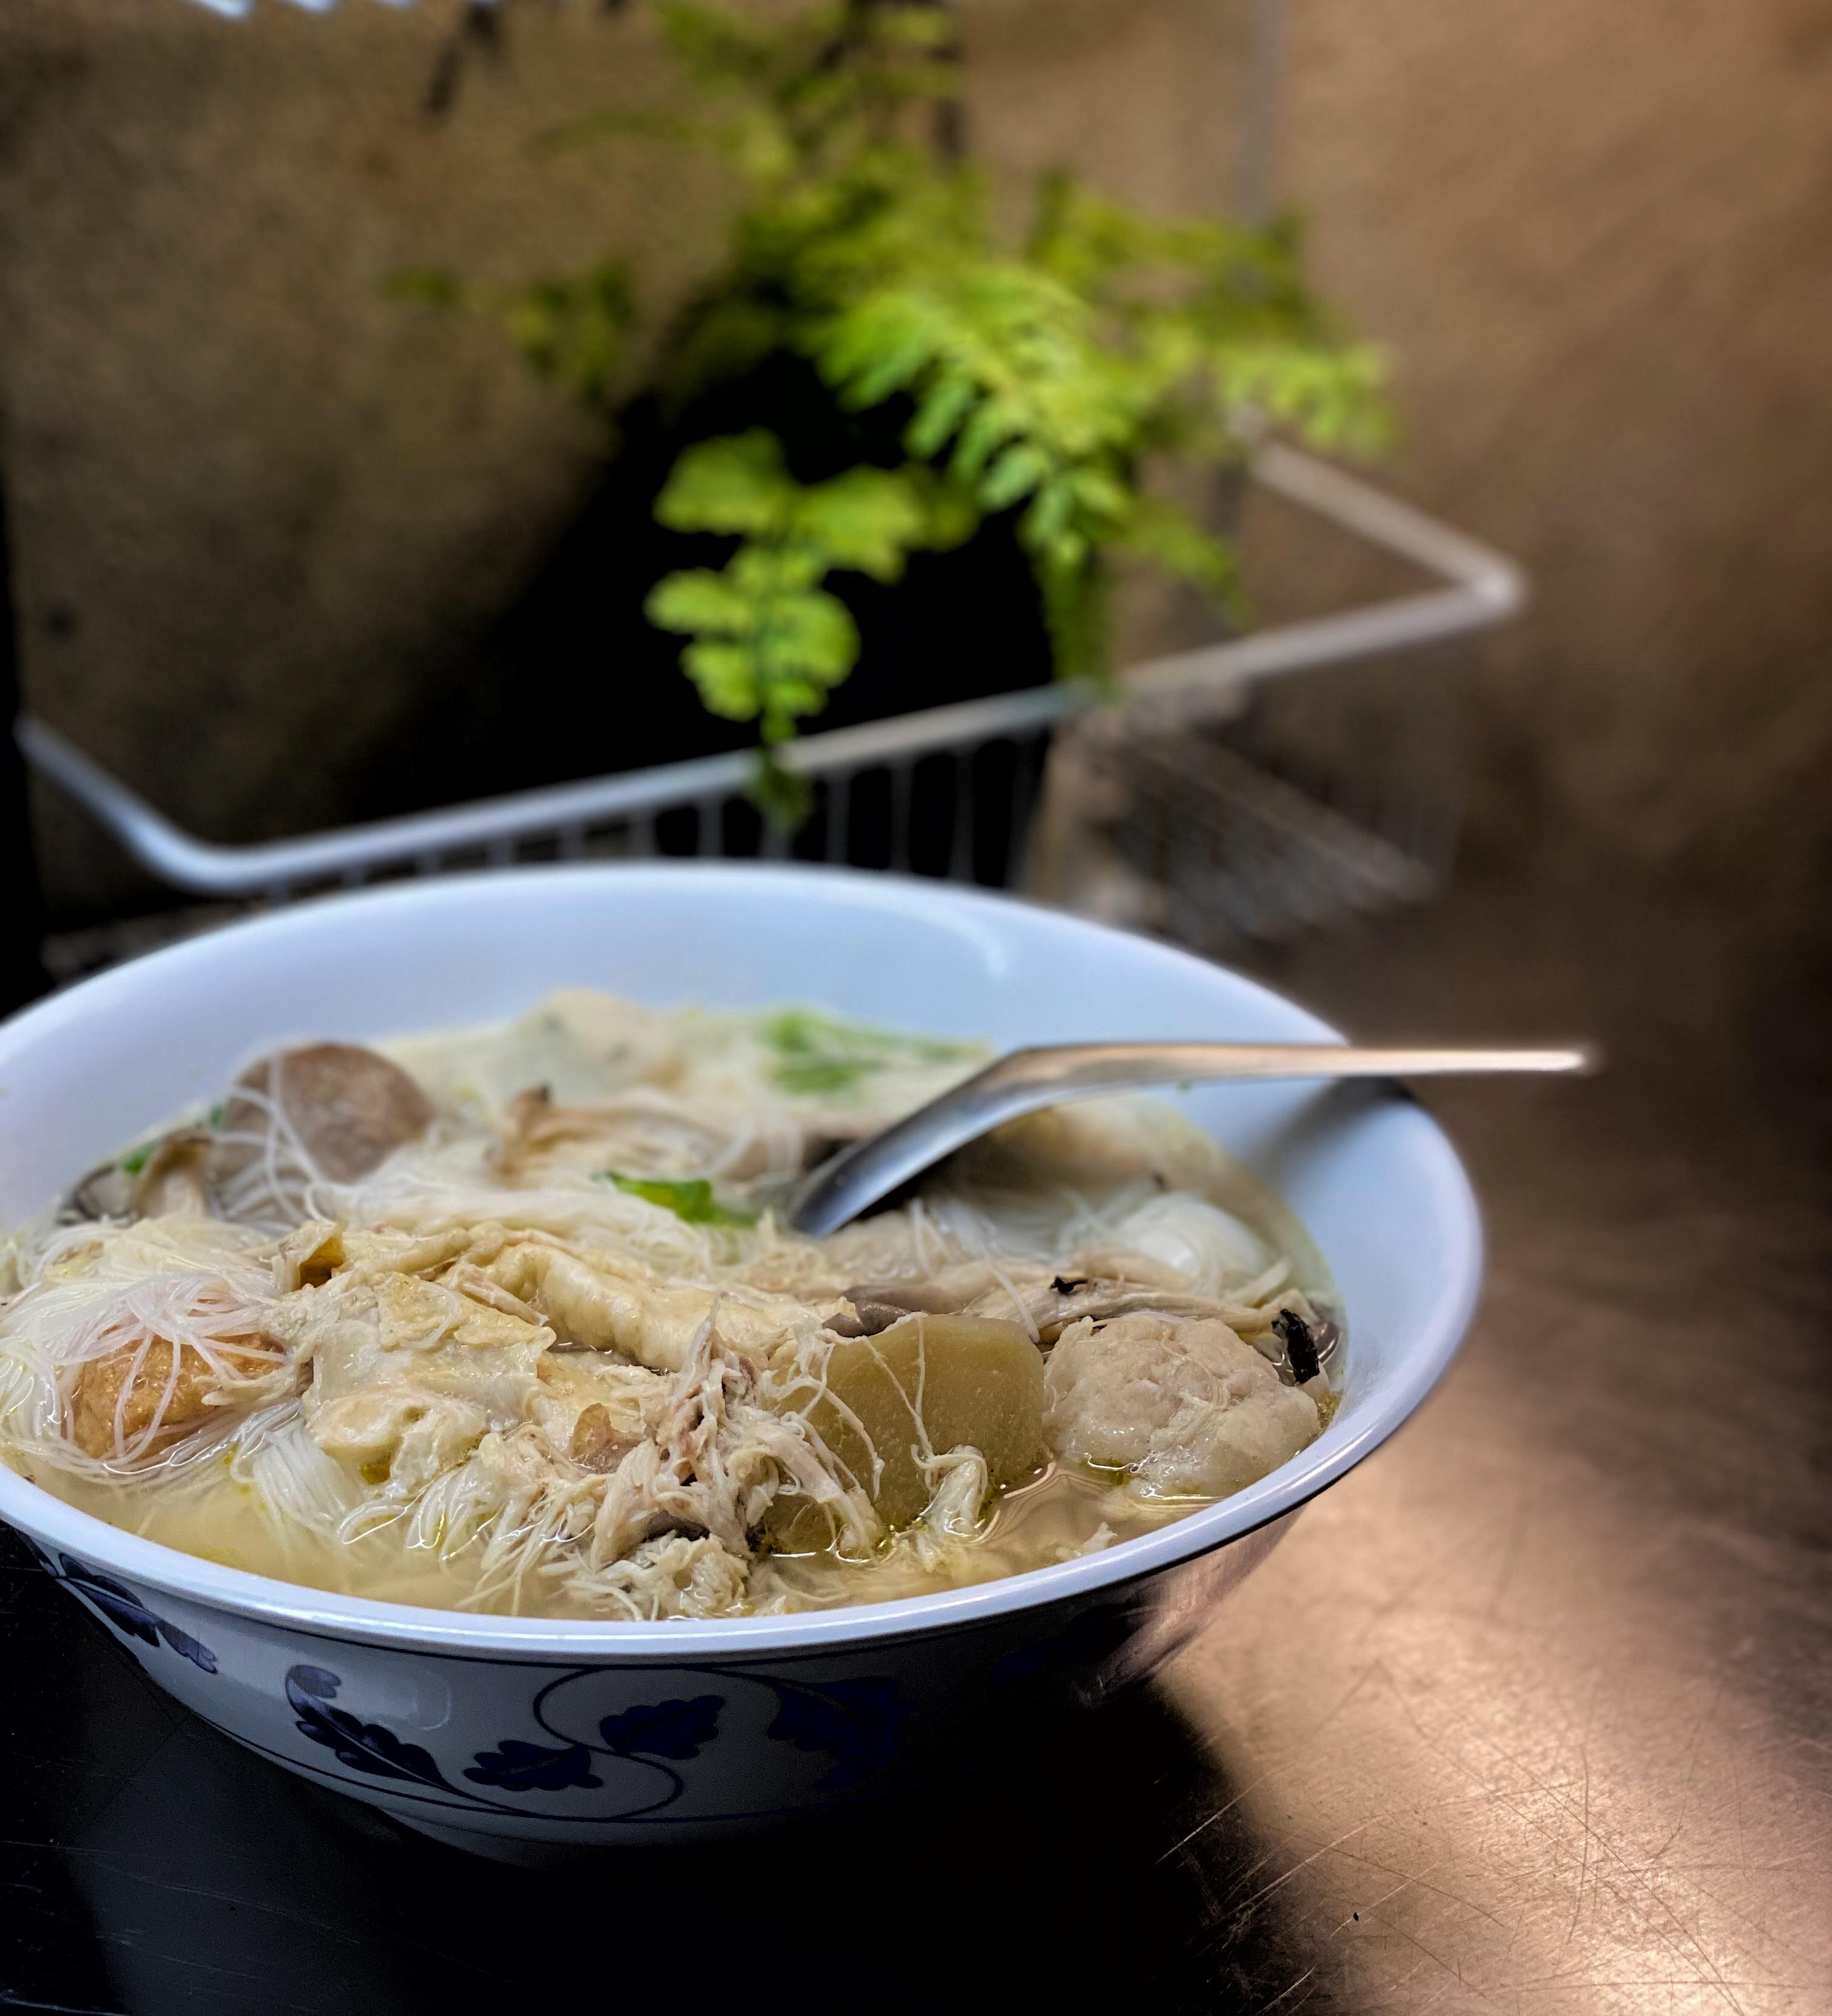 A picture of a bowl of soup, filled with thin rice noodles tangled in hunks of chicken, meatballs, and quail eggs. The bowl is sitting with a spoon in it, next to a potted fern.